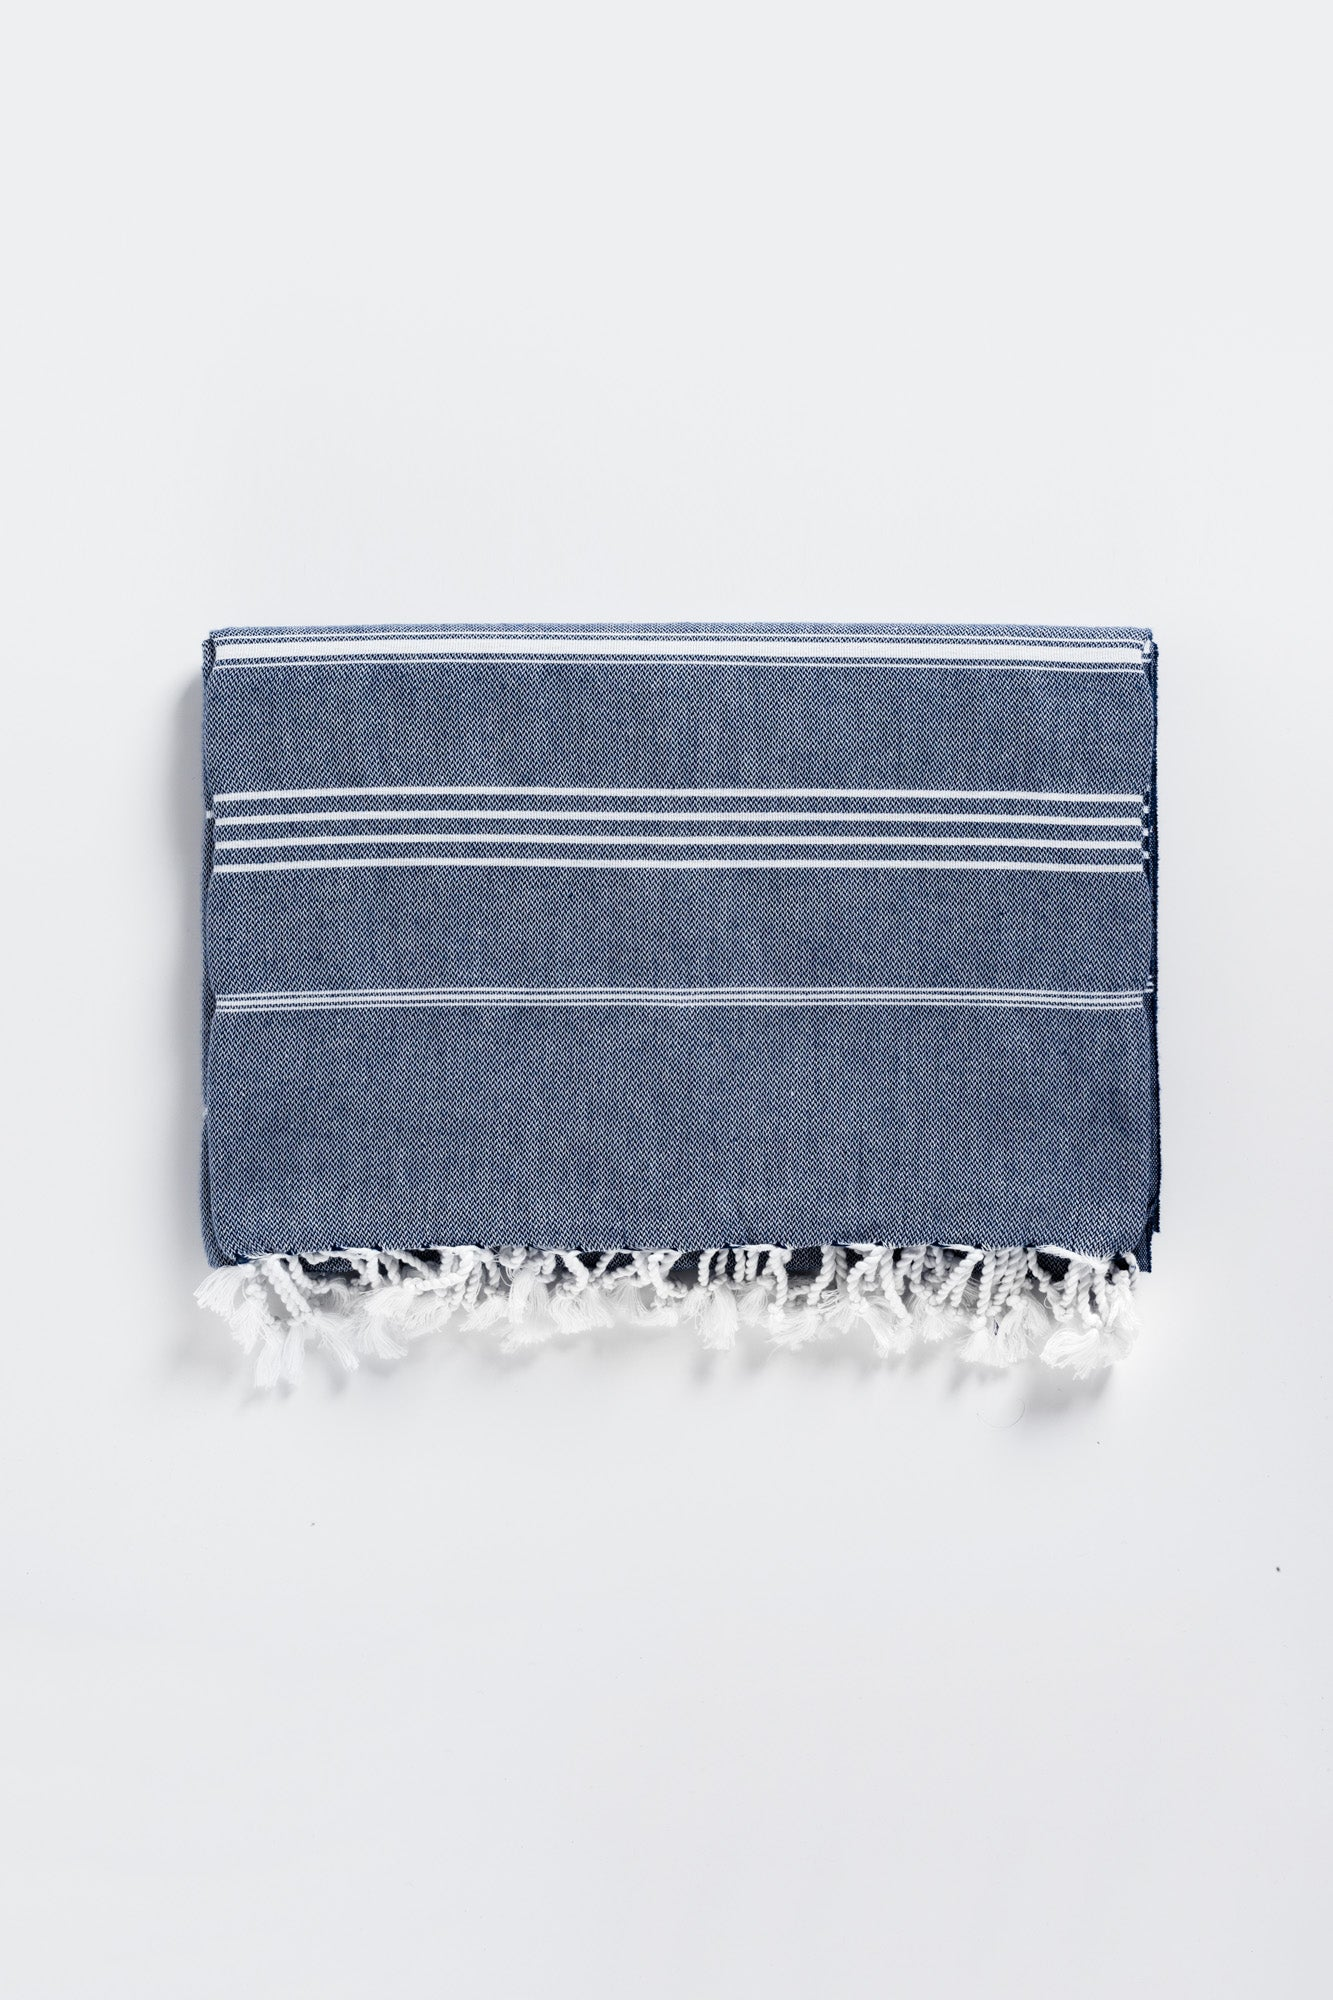 XL Basic Navy Turkish Towel